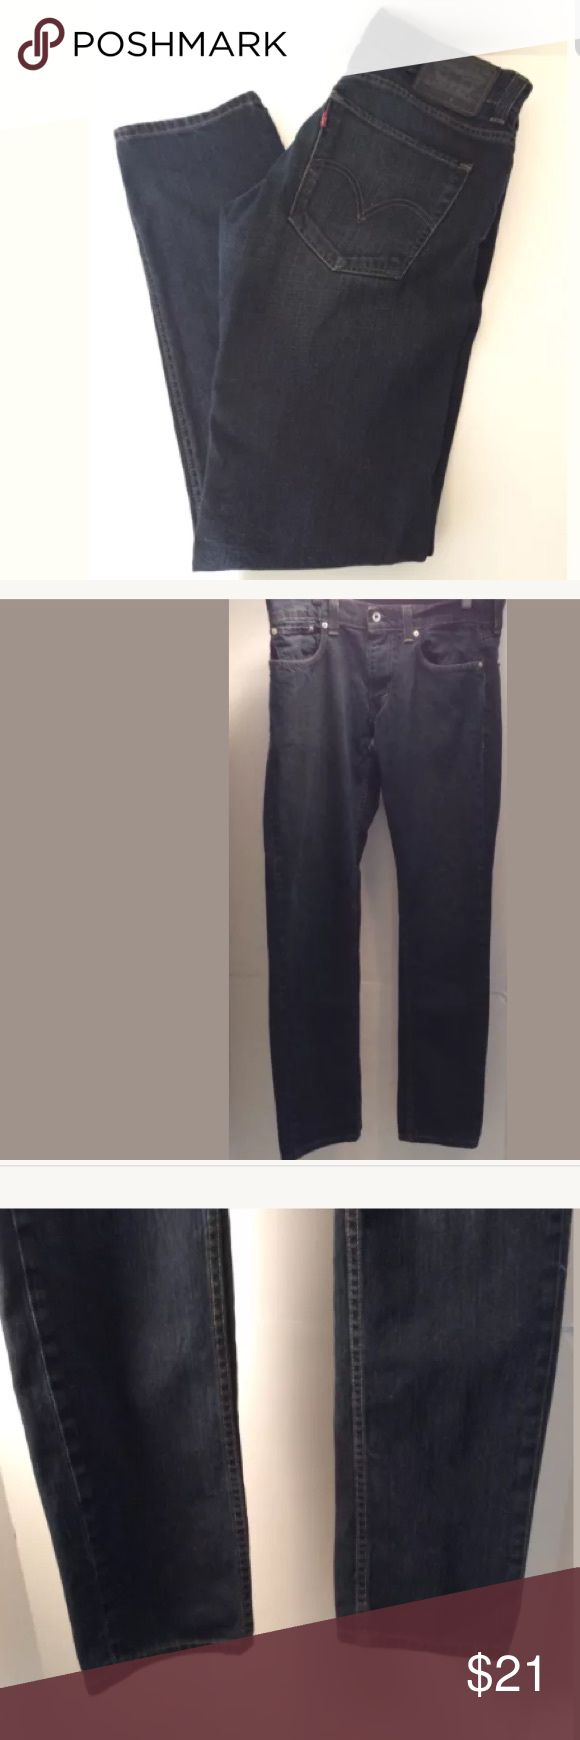 Men Levi's 511 Skinny Jeans 32X32 Blue Items for sale: Pre-Owned Blue Men Levi's 511 Skinny Jeans, gently used, good condition and quality. The size is W 32 L 32. 32X32  Thanks for viewing this listing! Levi's Jeans Skinny